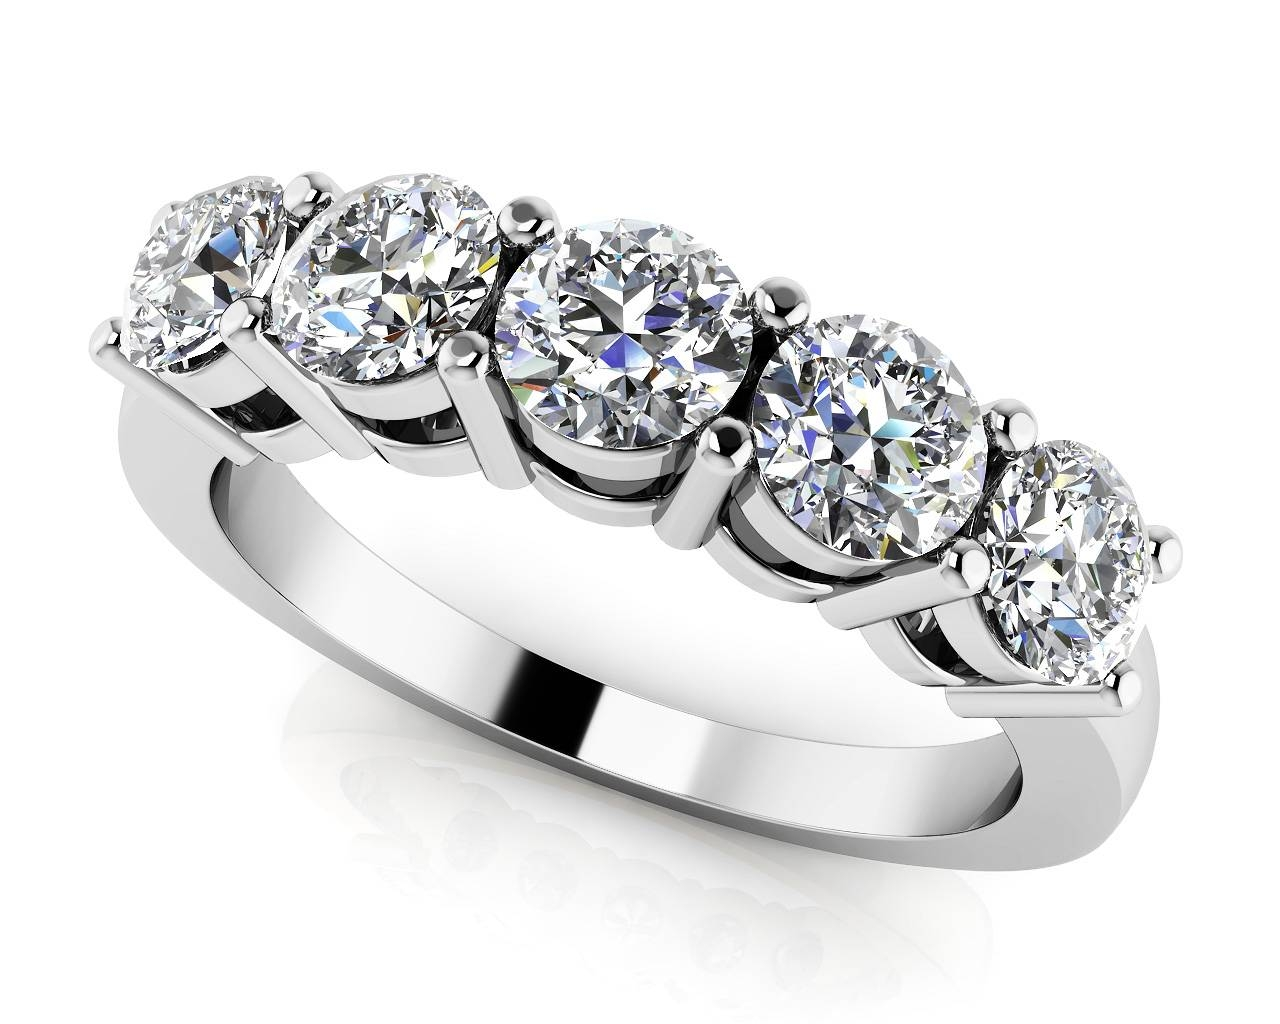 Design Your Own Diamond Anniversary Ring & Eternity Ring In Most Popular Anniversary Rings For Couples (View 4 of 25)